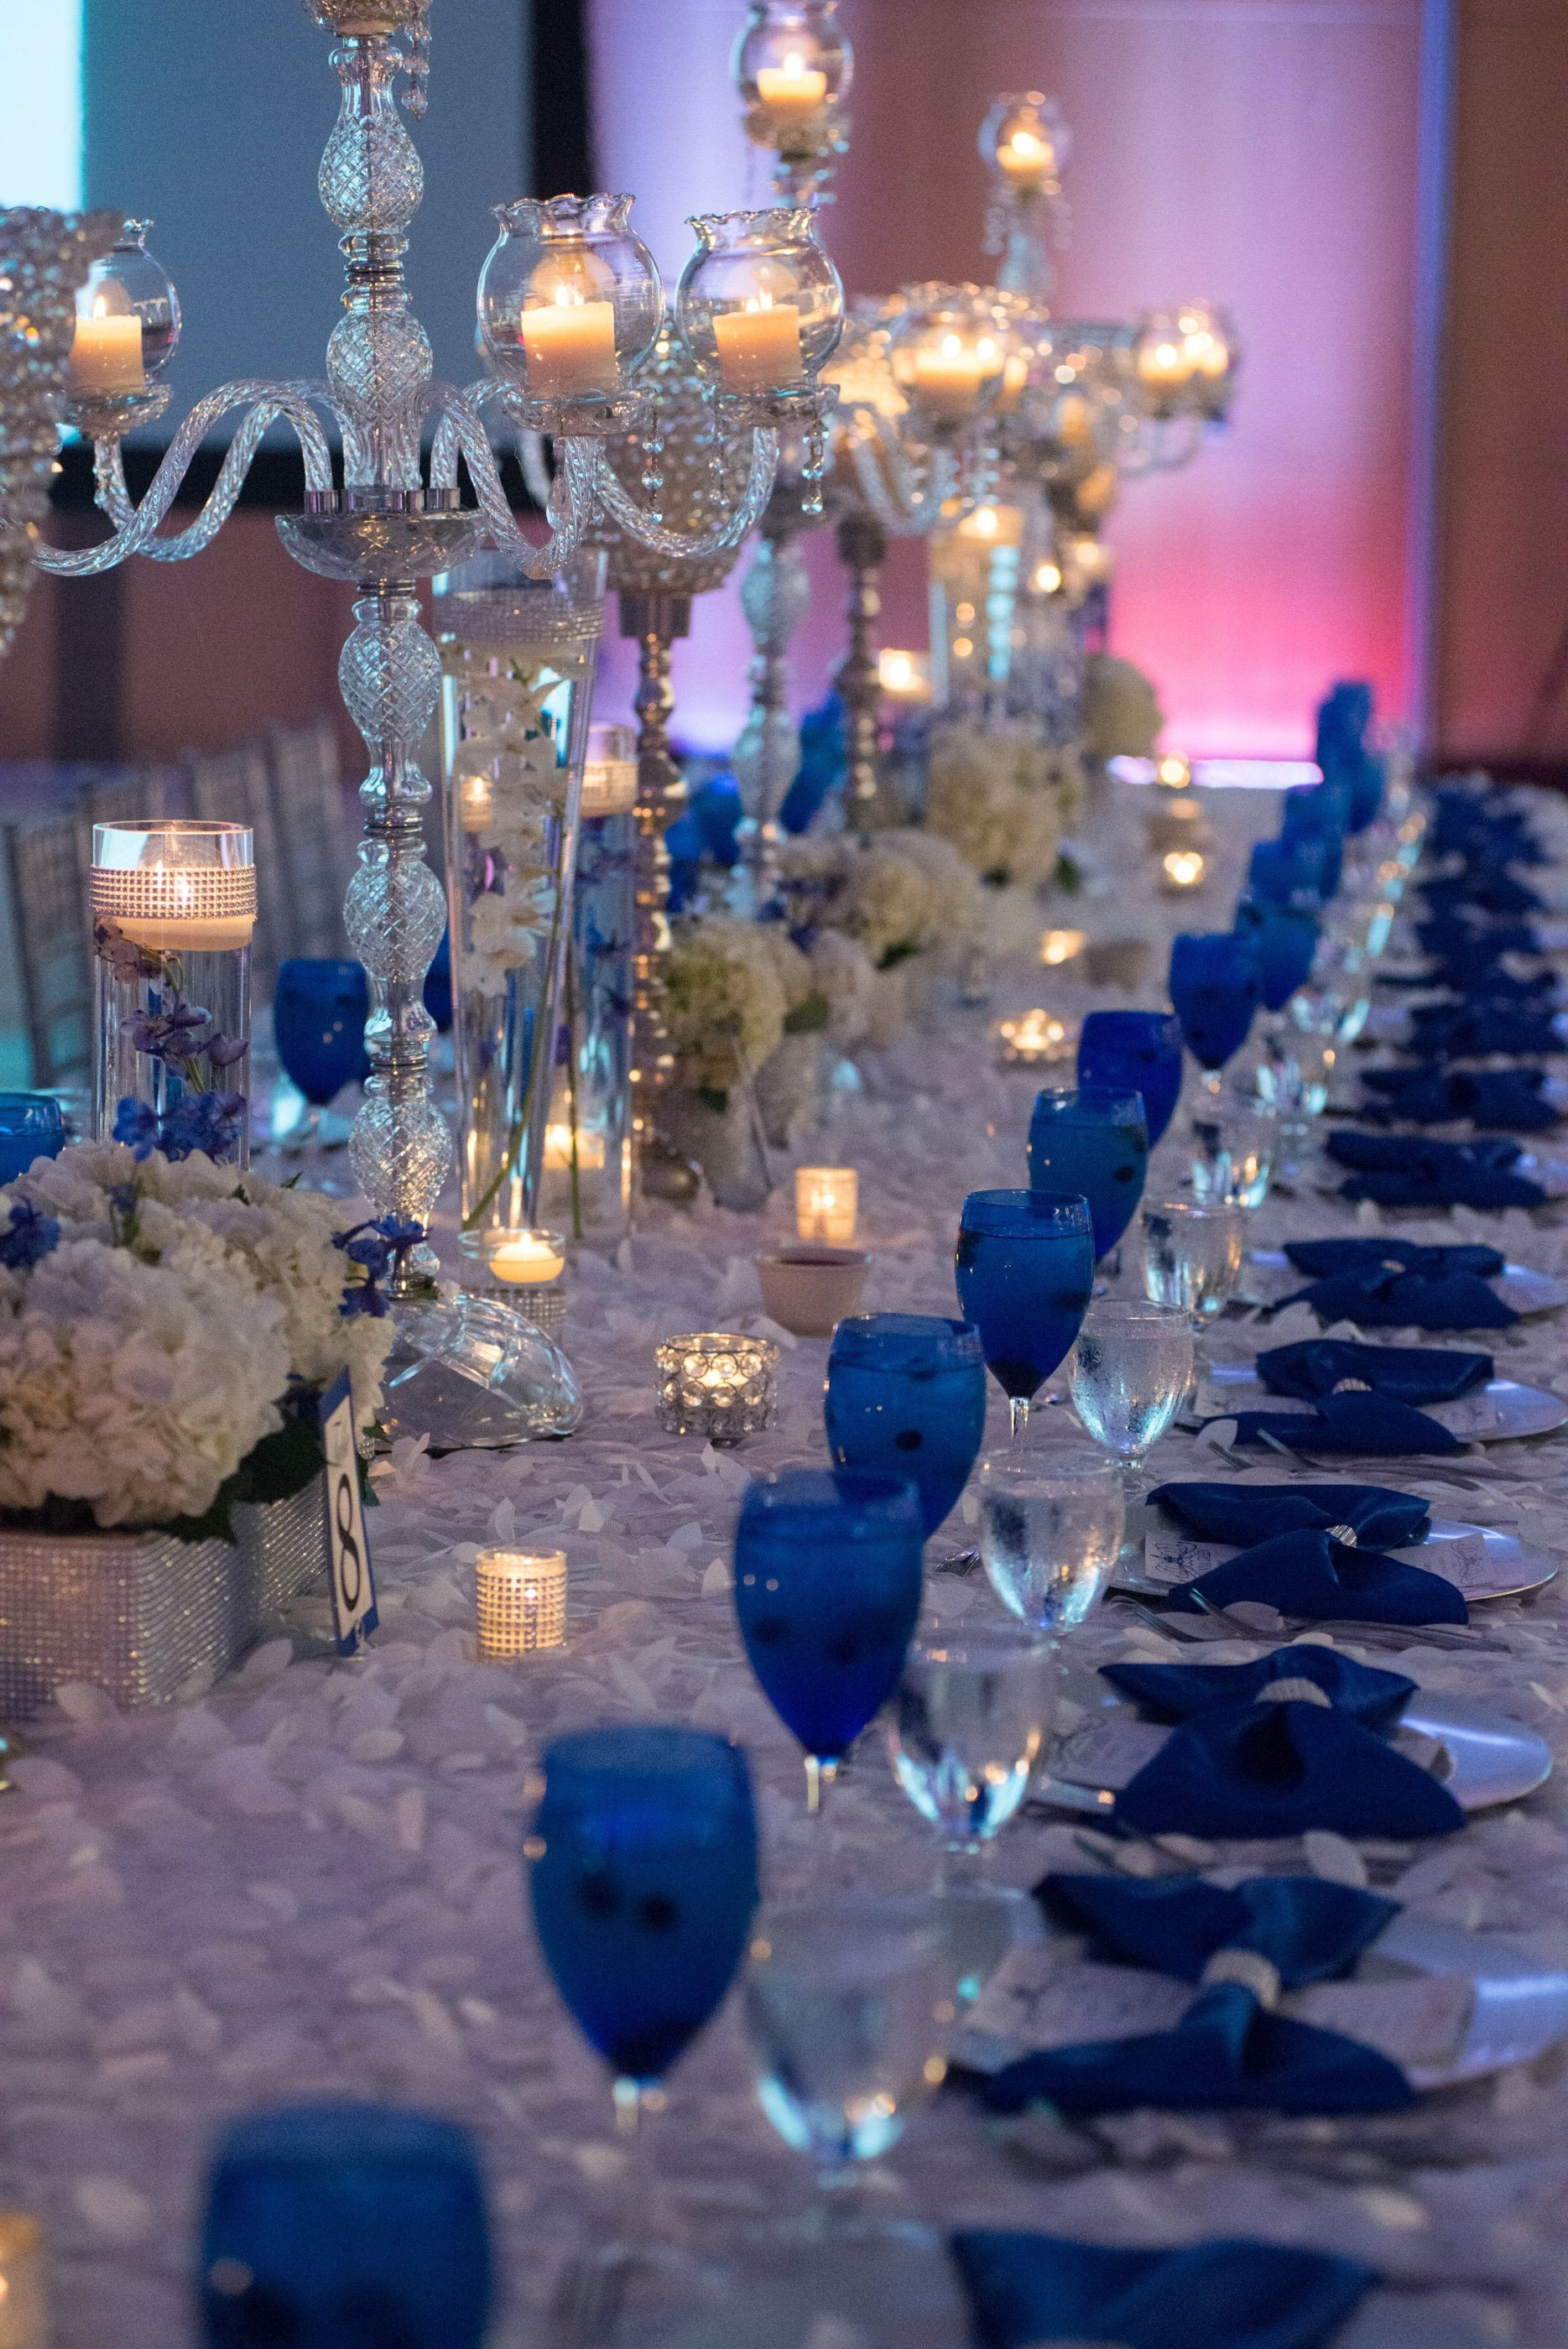 Royal Blue Decor for Weddings Awesome Our Royal Blue Wedding Family Styled Seating Reception Table Blue Goblets Blue Reception